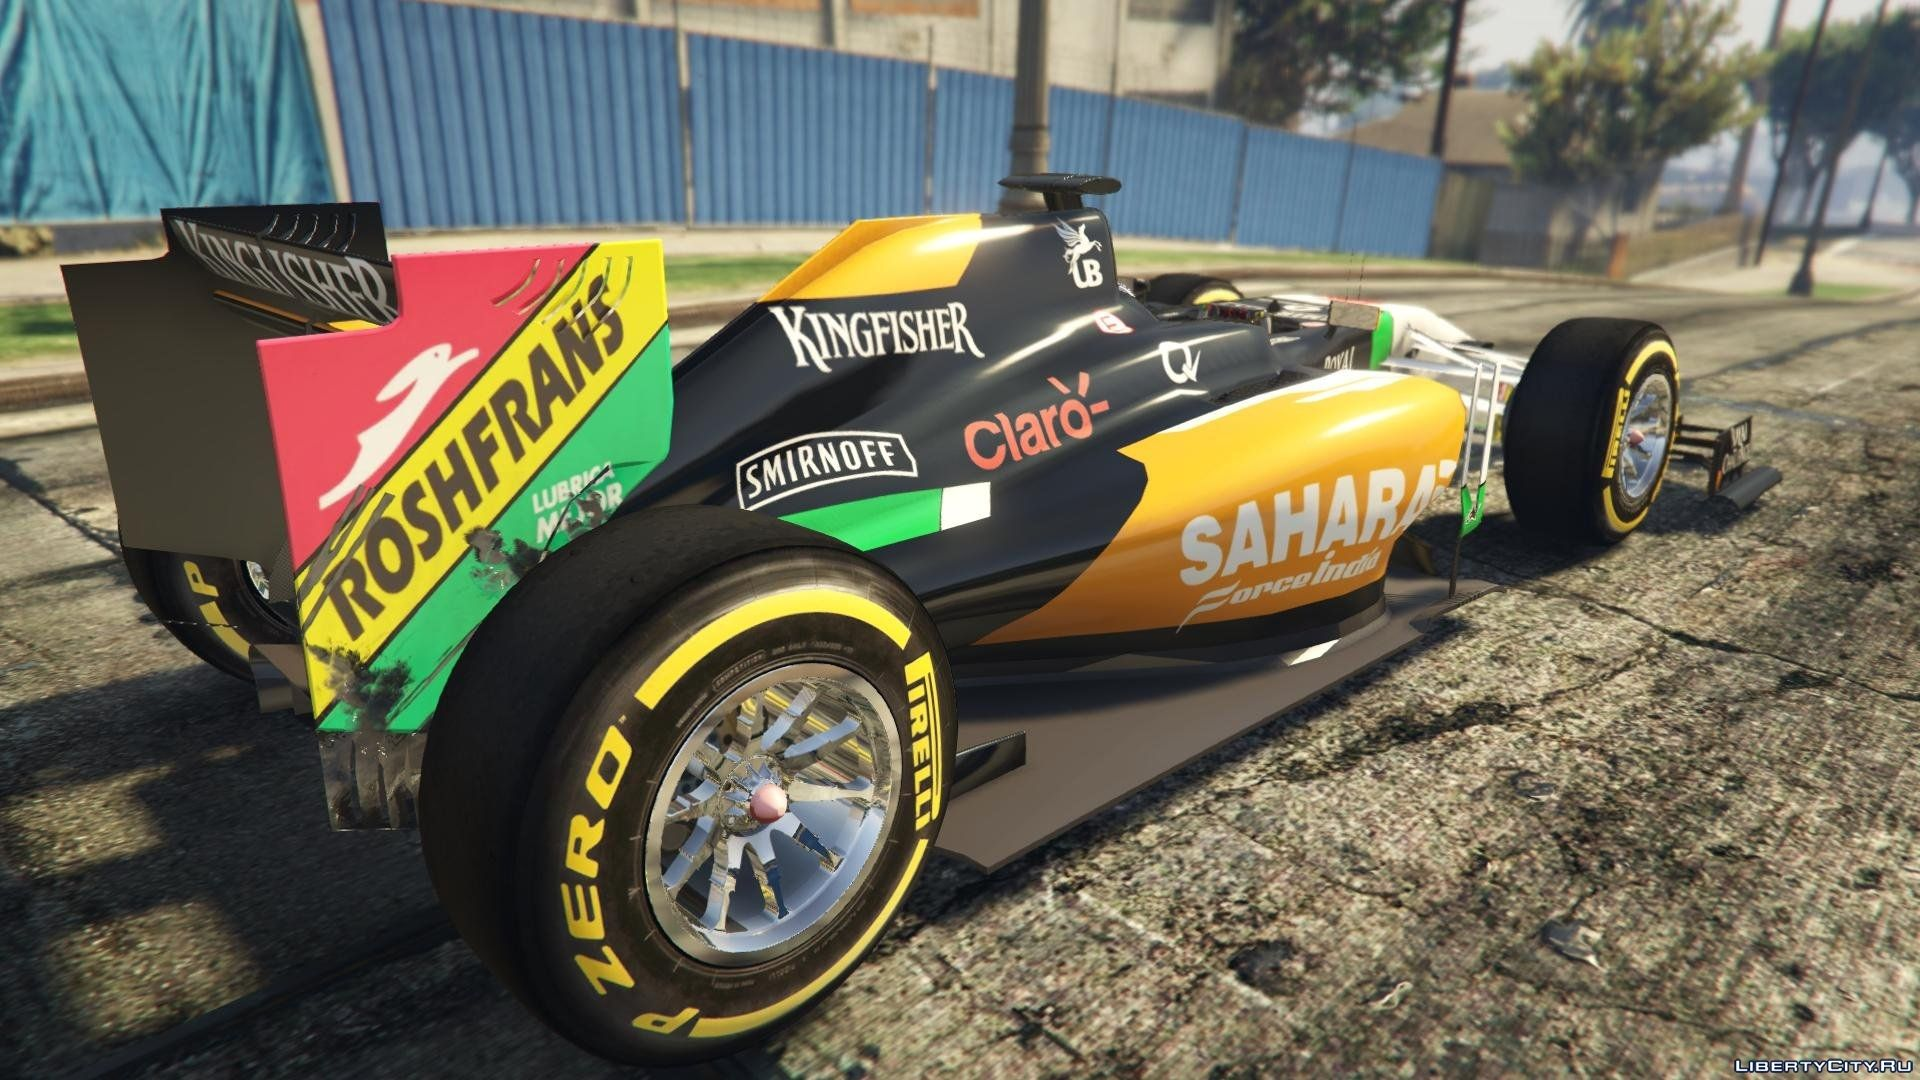 Force India2 F1 [+ Add-On] for GTA 5